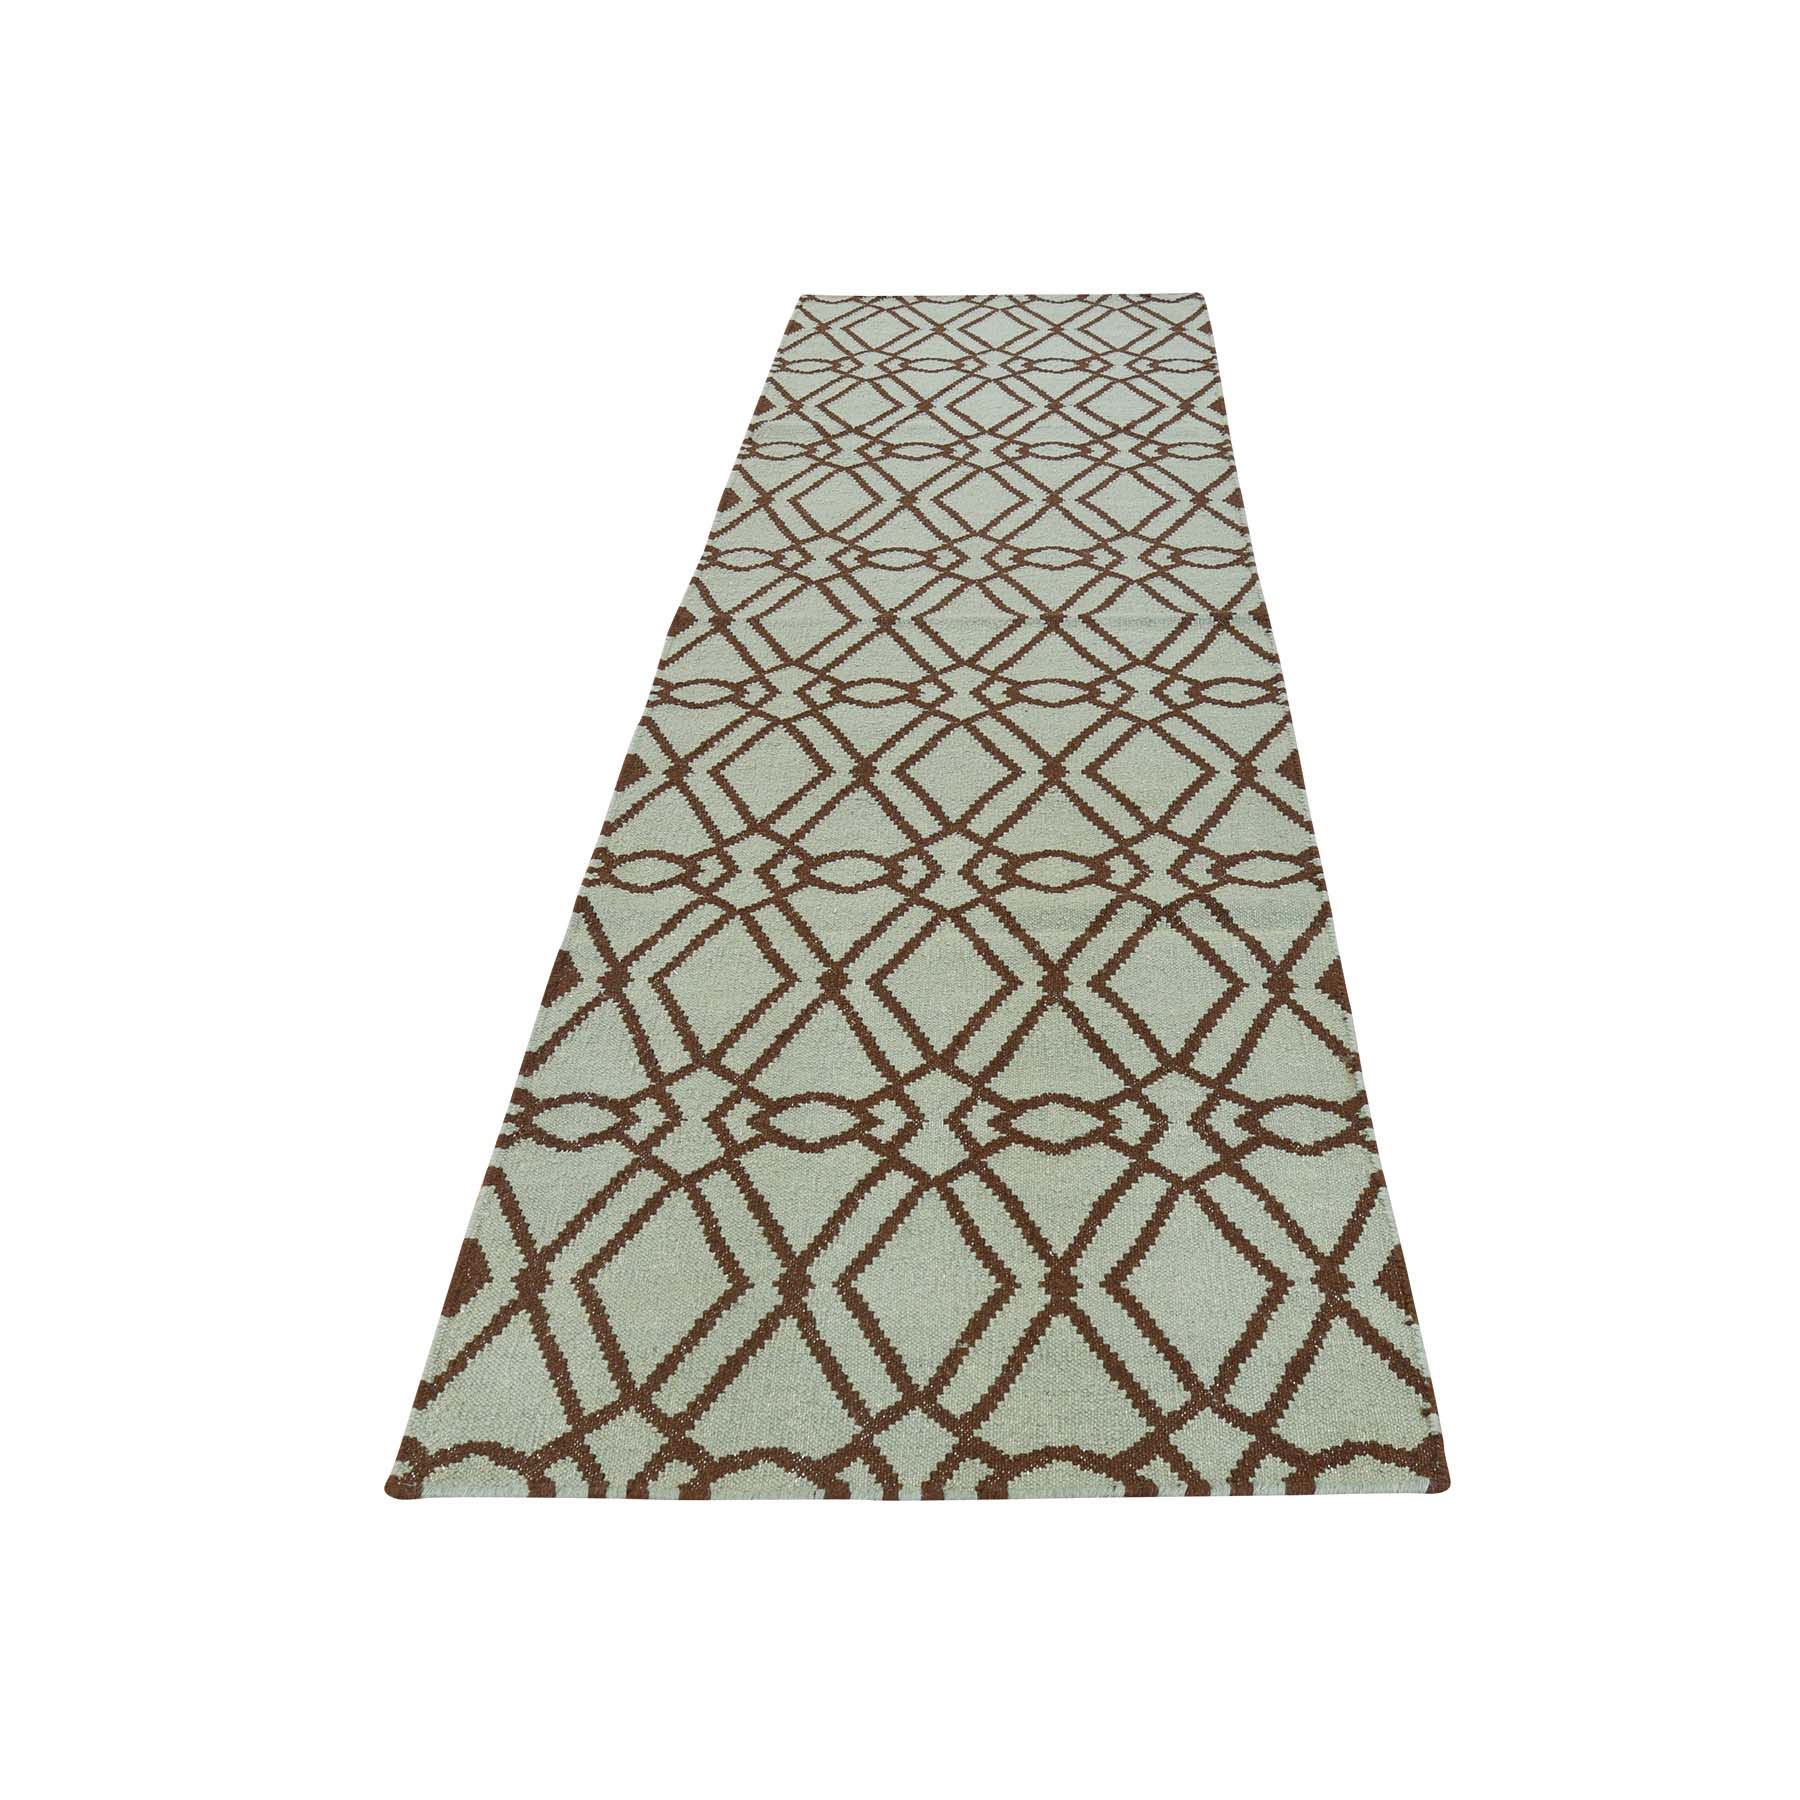 2'9''X6' Hand Woven Reversible Flat Weave Durie Kilim Runner Rug moac786e